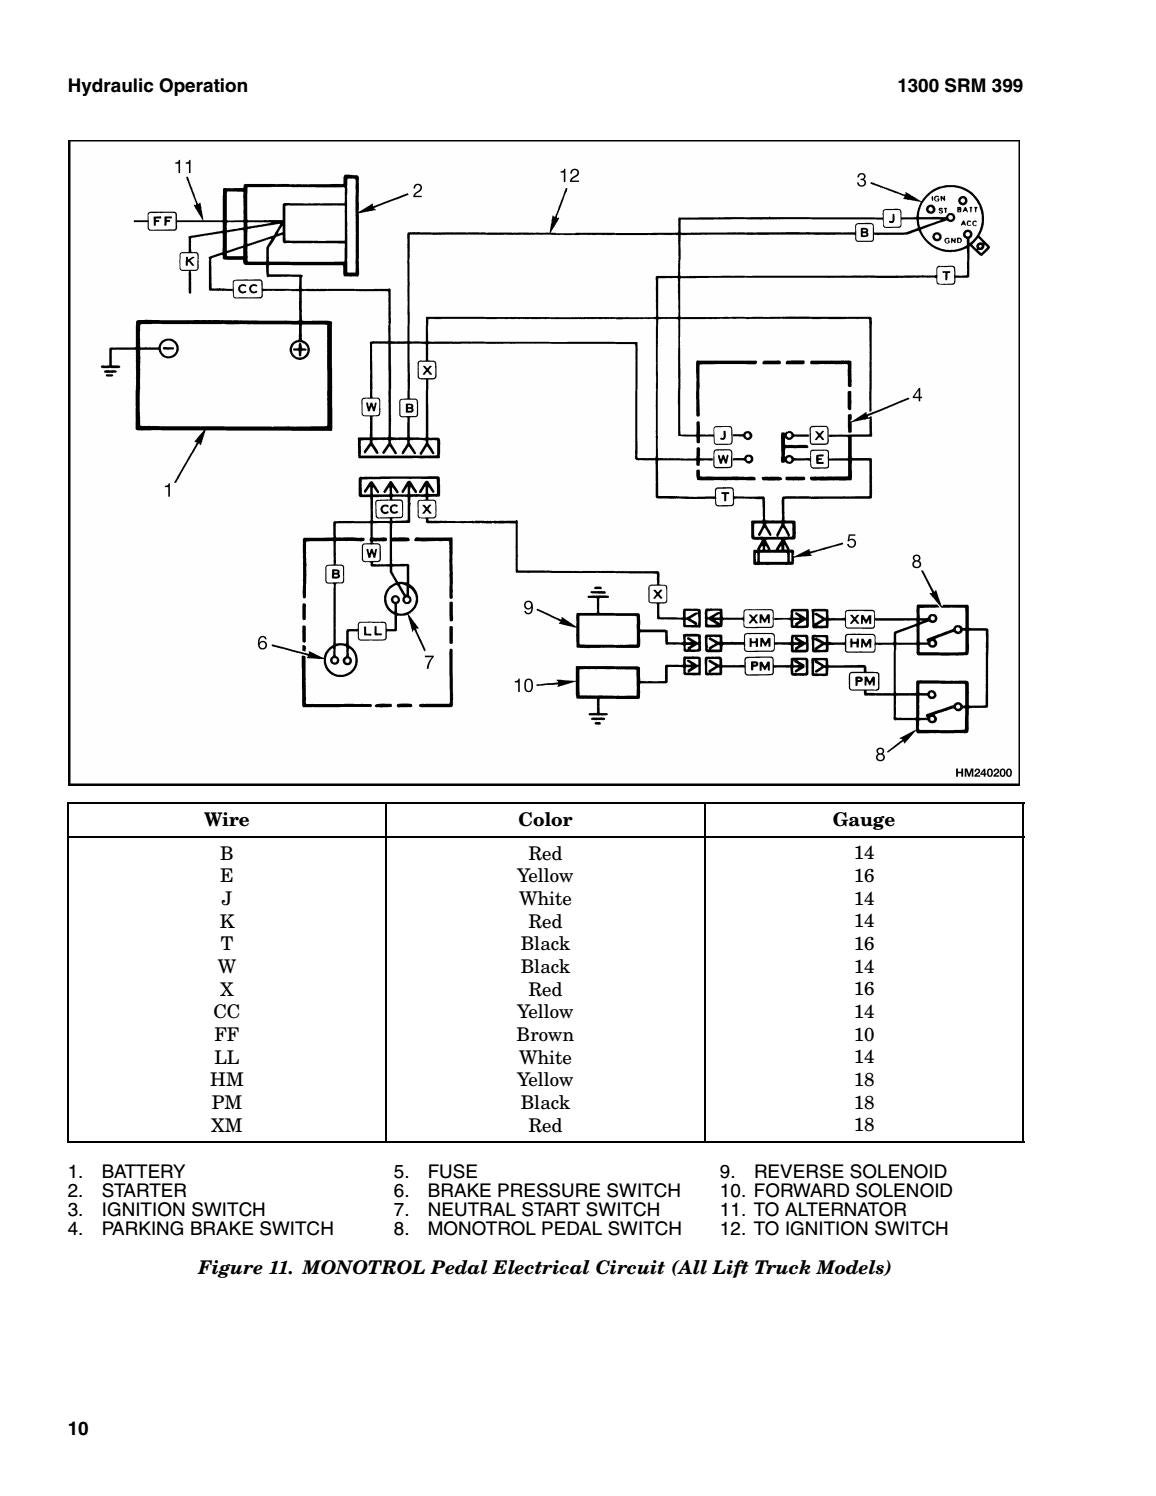 [DIAGRAM_3US]  5915A5 Hyster Ignition Switch Wiring - Top Electrical Wiring Diagram |  Wiring Library | Wiring Yale Diagram Spe40 |  | Wiring Library